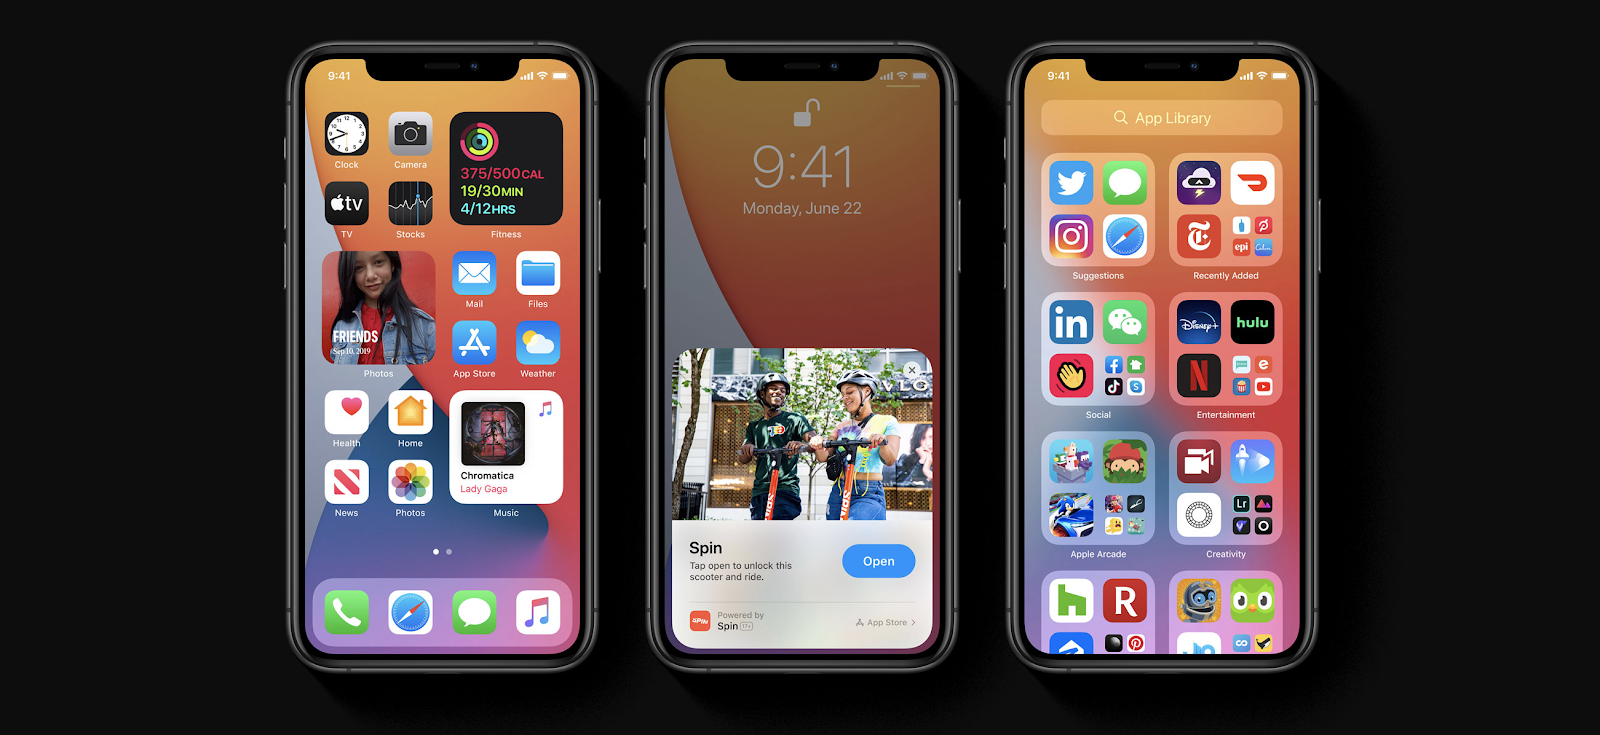 iPhones depicting new features included custom widgets, app clips, and the new app library.